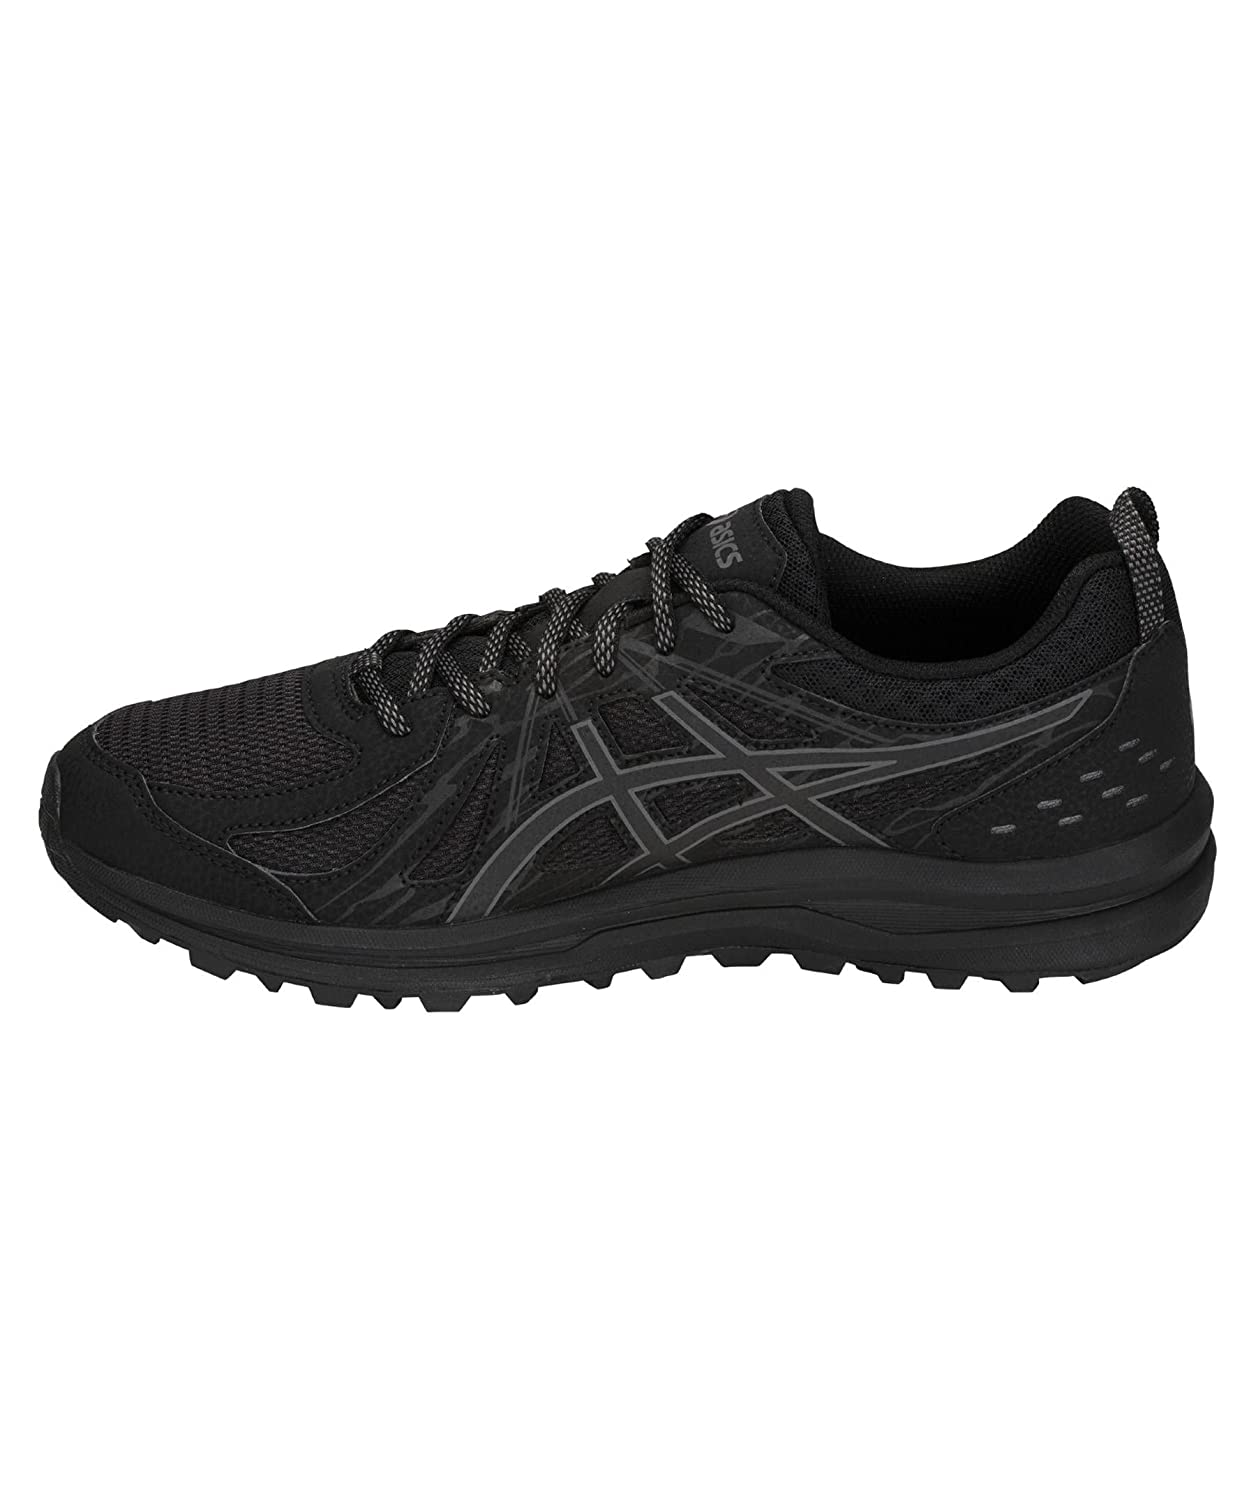 Asics Zapatillas Talla Grande 49 Frequent Trail 1011A034 001-49 USA 14 UK 13 (31 Cm.) 49|schwarz (15)